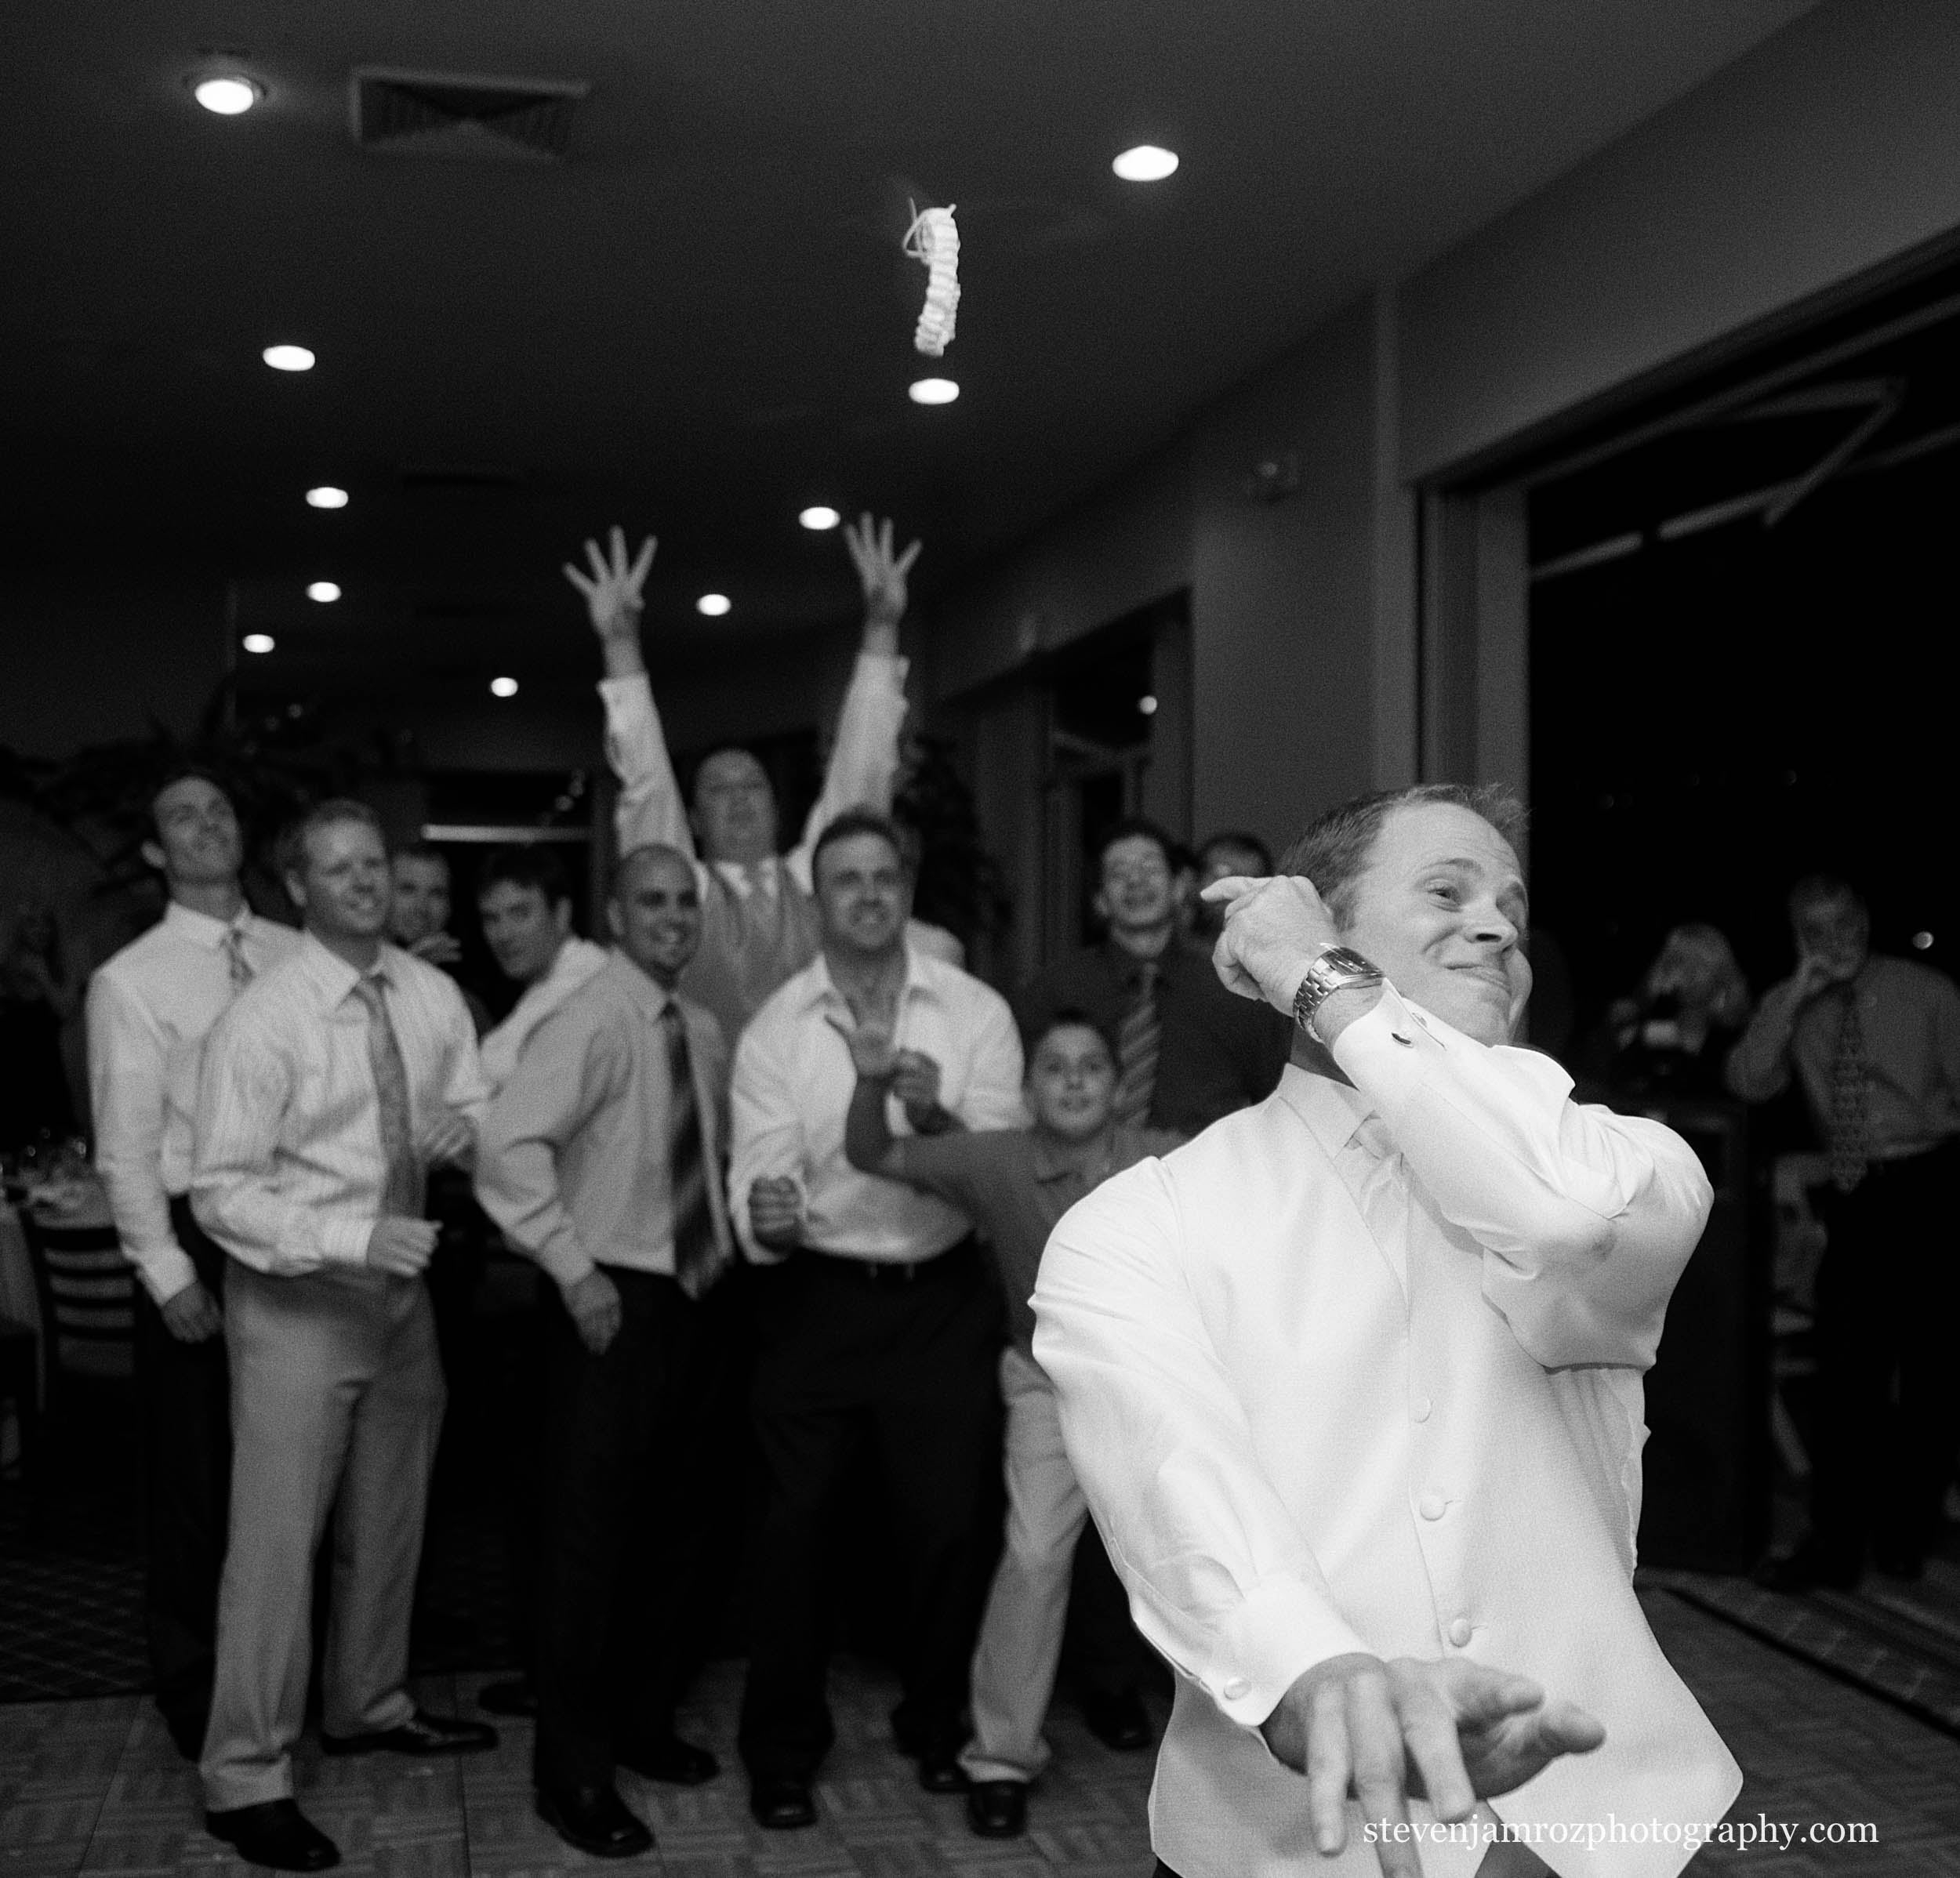 group-shot-groom-garter-toss-durham-nc-wedding-steven-jamroz-photography-0439.jpg